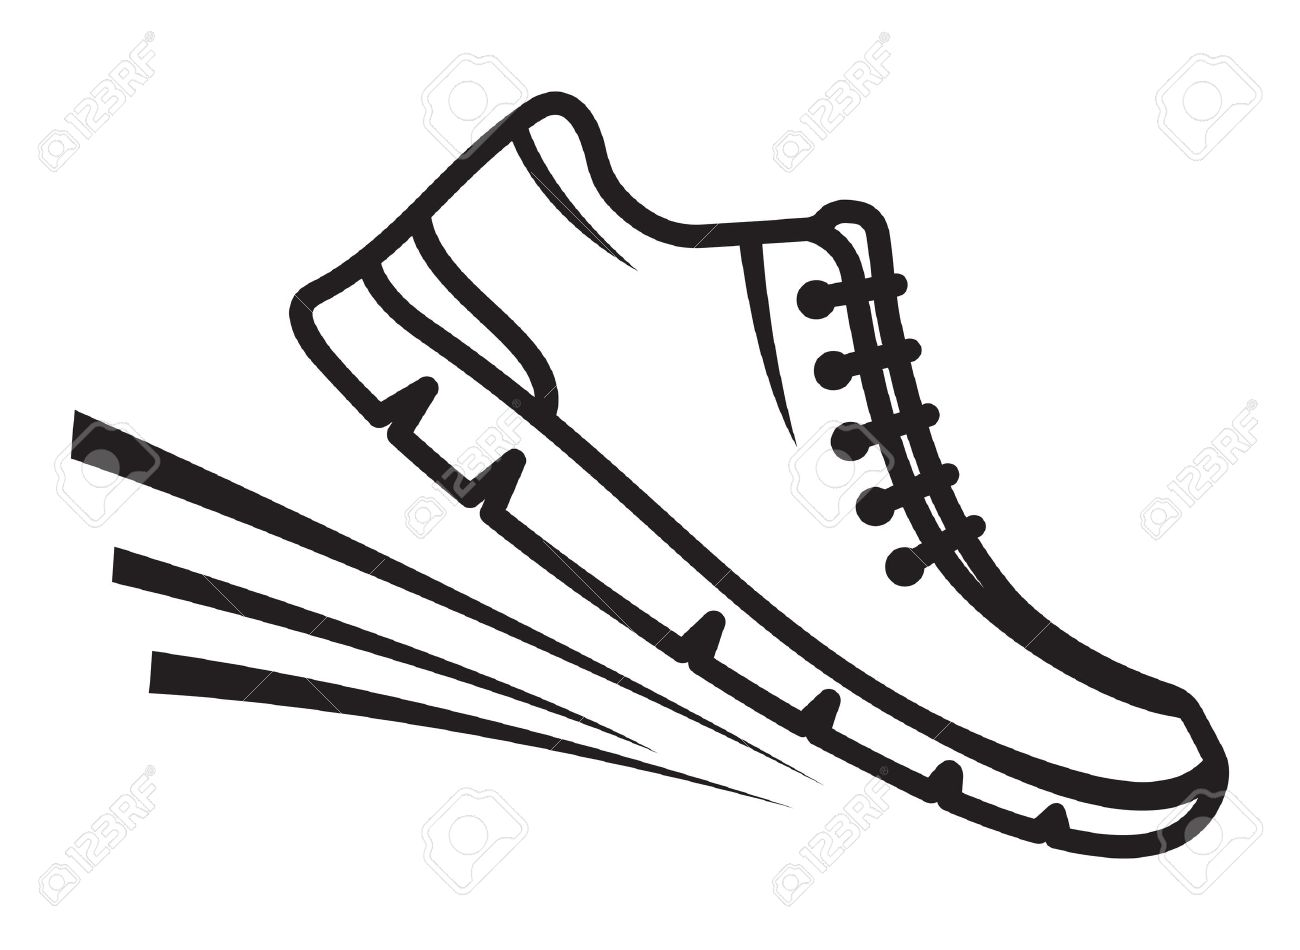 running shoes drawing at getdrawings com free for personal use rh getdrawings com free clipart images running shoes clip art running shoes free